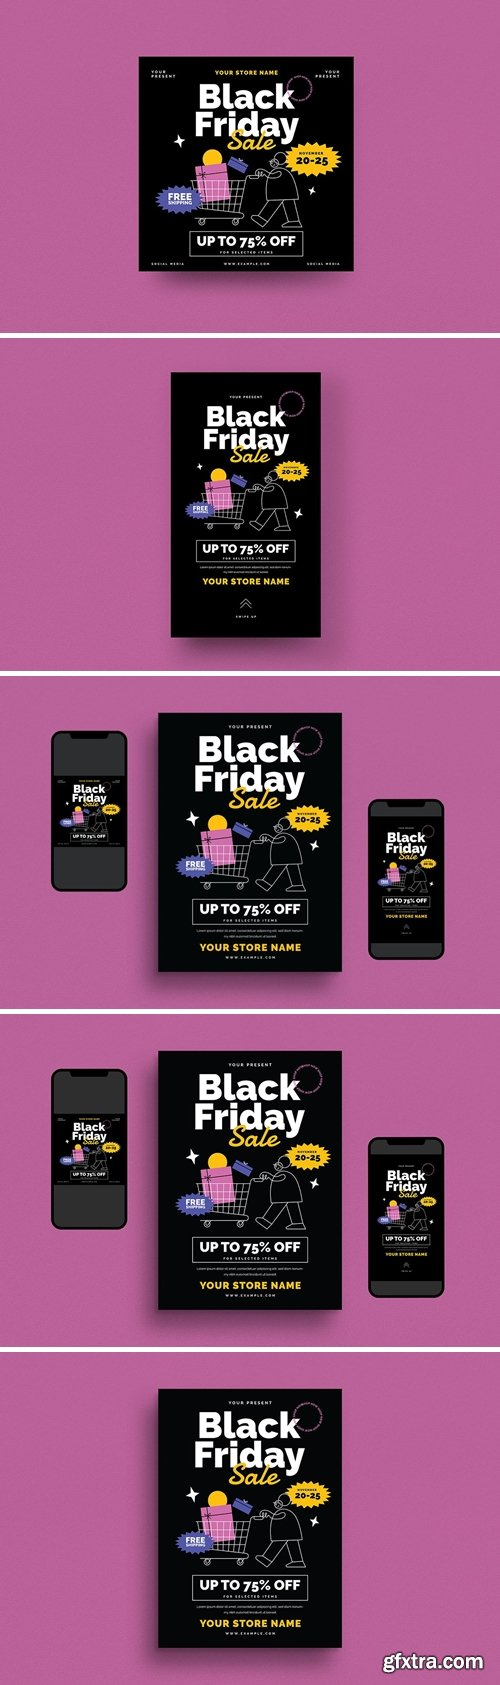 Black Friday Event Flyer Set